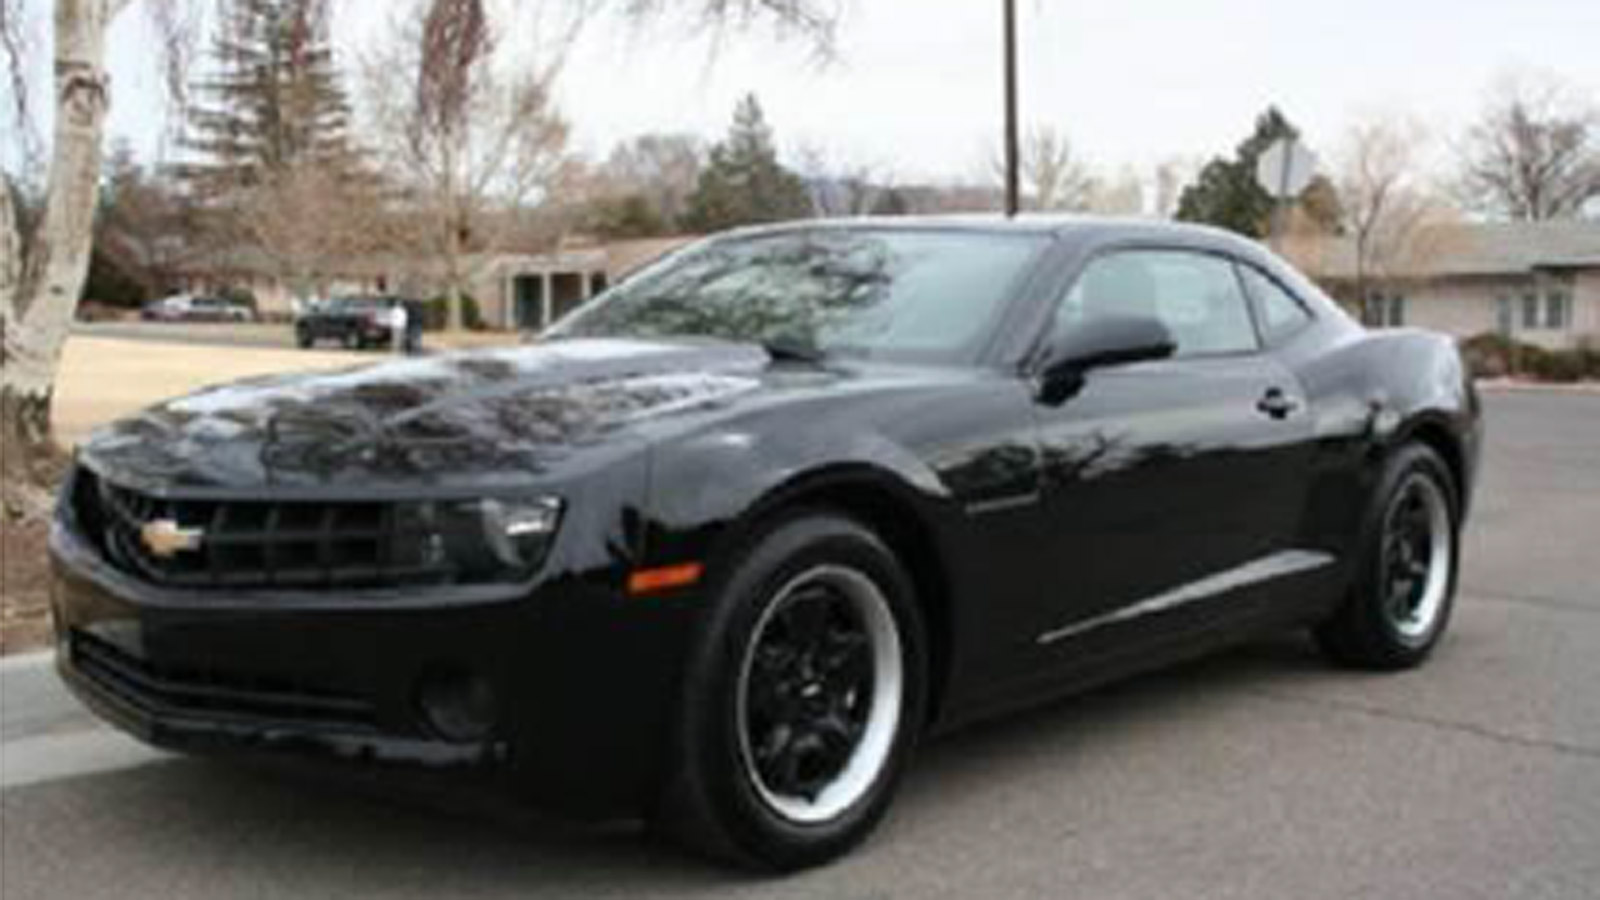 A Chevy Camero like the suspect vehicle wanted in a deadly shooting in the Baker Neighborhood in July (credit: Denver Police)